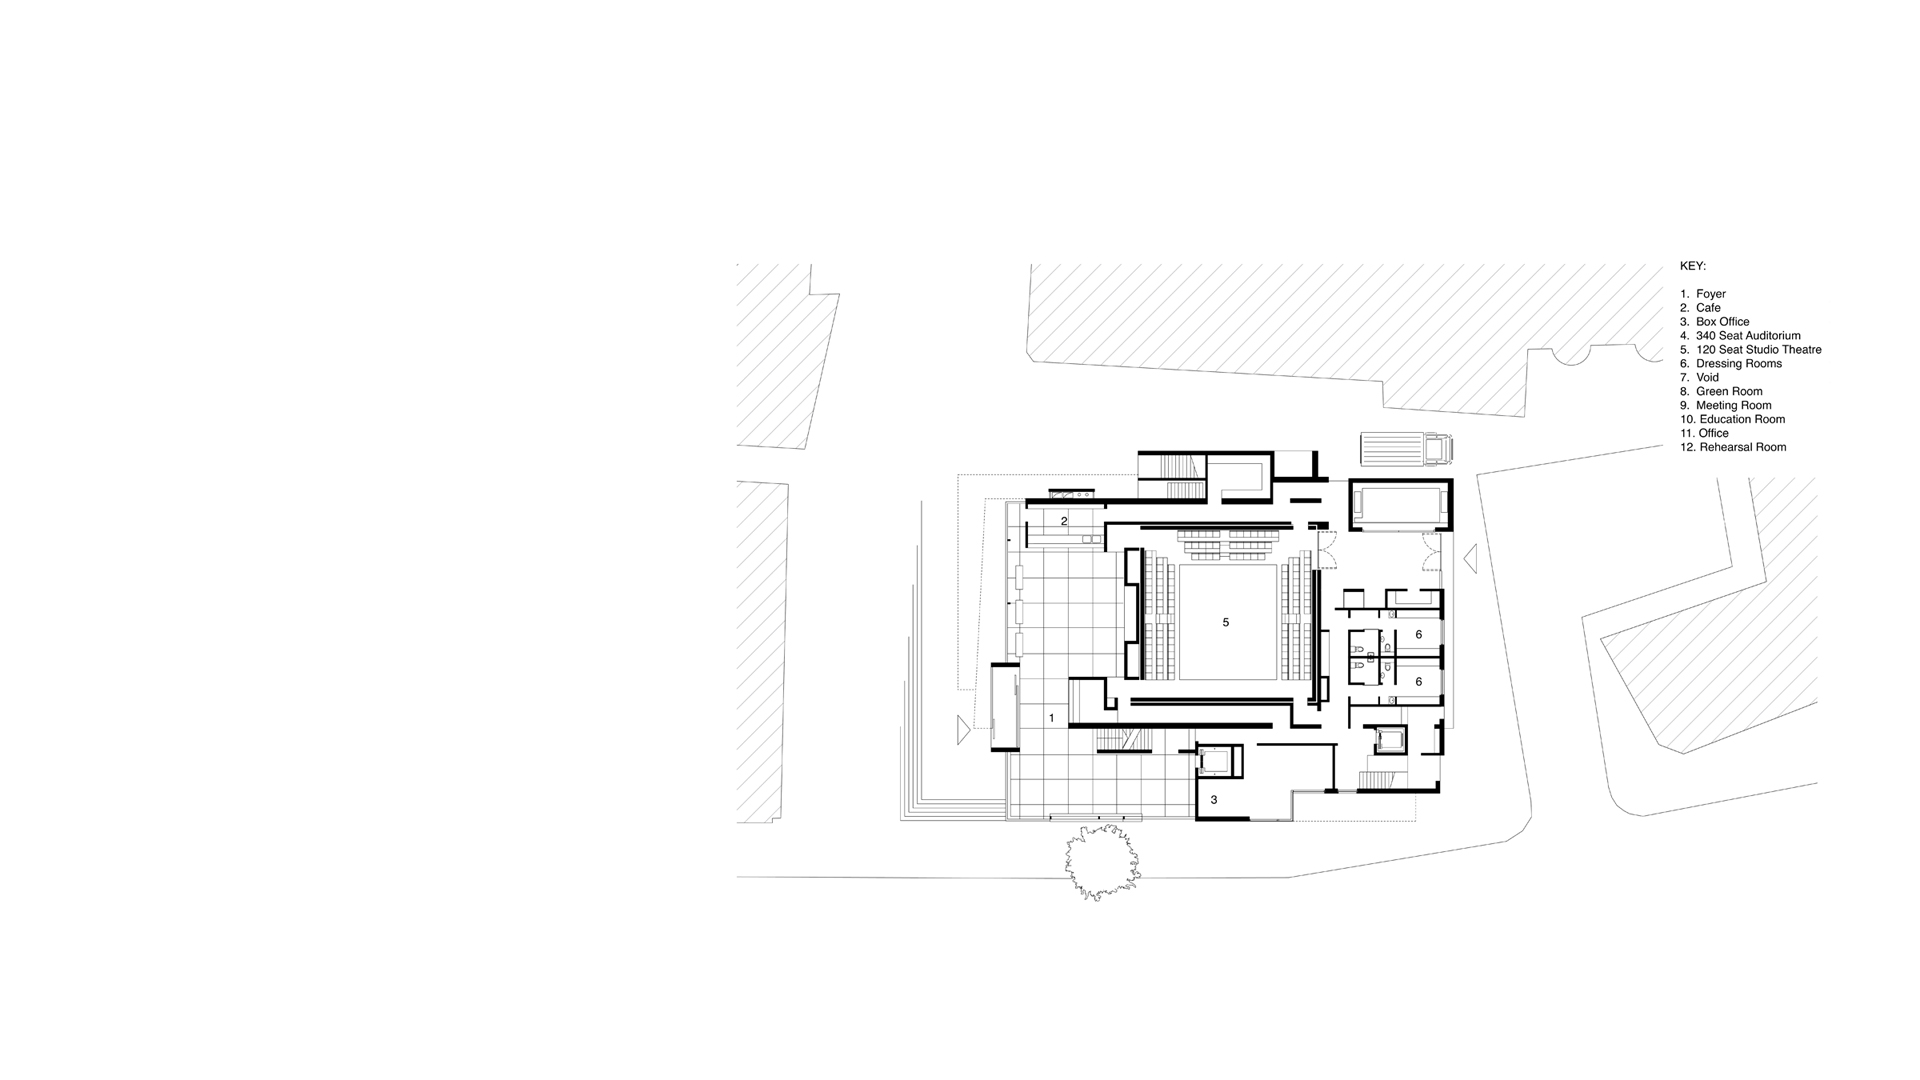 Entrance level plan with the Clore Studio at London's Unicorn Theatre